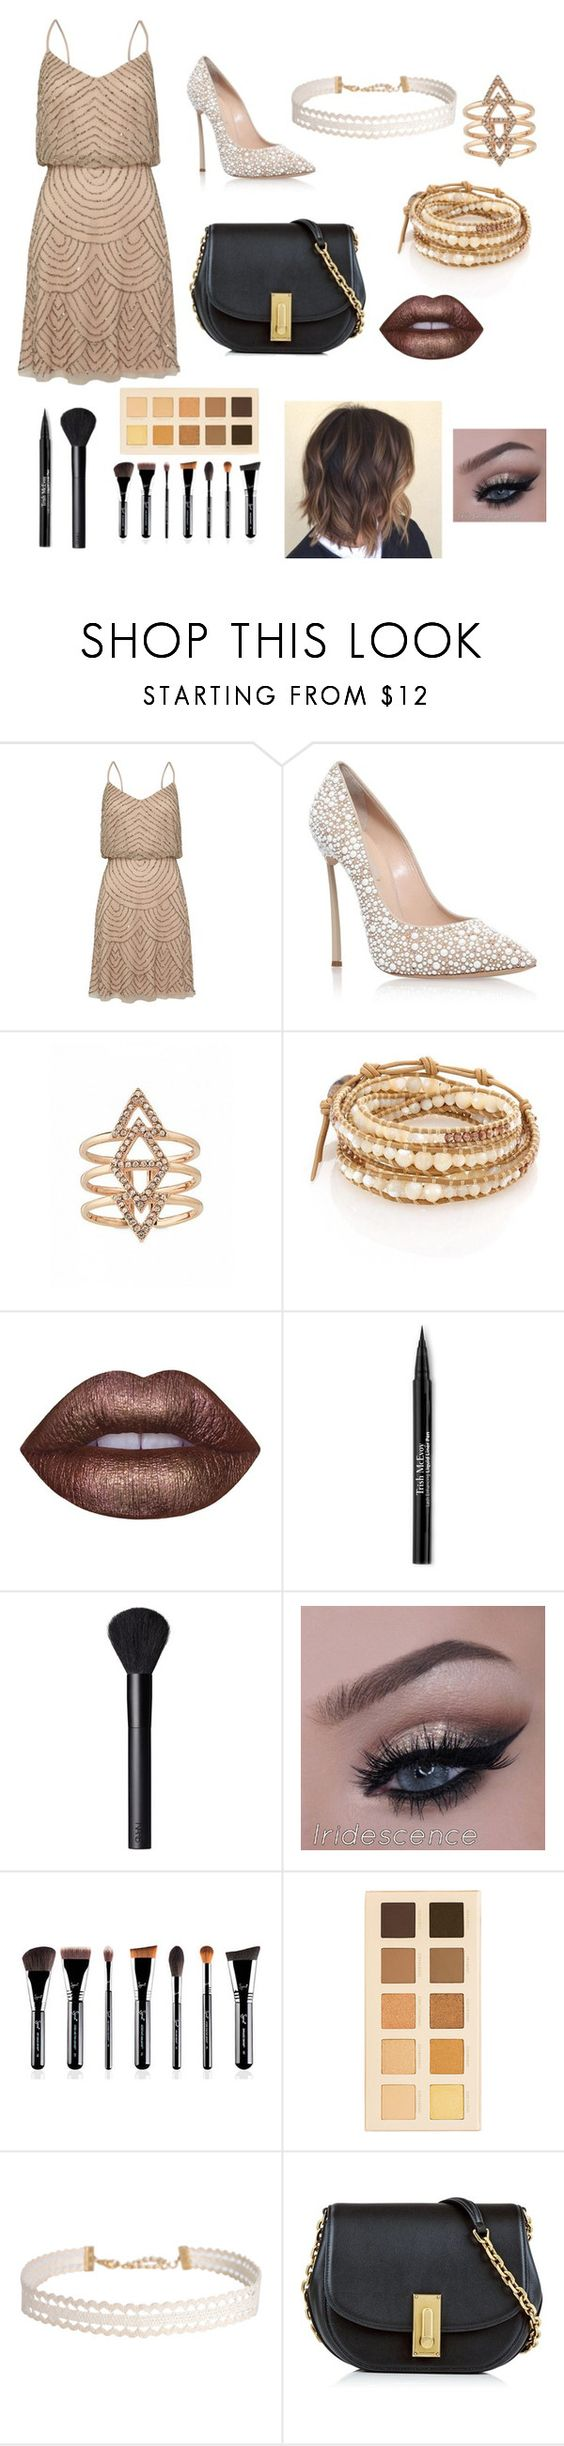 """Date Night W/ Choker"" by kaceyfromgeorgia ❤ liked on Polyvore featuring Adrianna Papell, Casadei, Chan Luu, Lime Crime, Trish McEvoy, NARS Cosmetics, LORAC, Humble Chic, Marc Jacobs and DateNight"